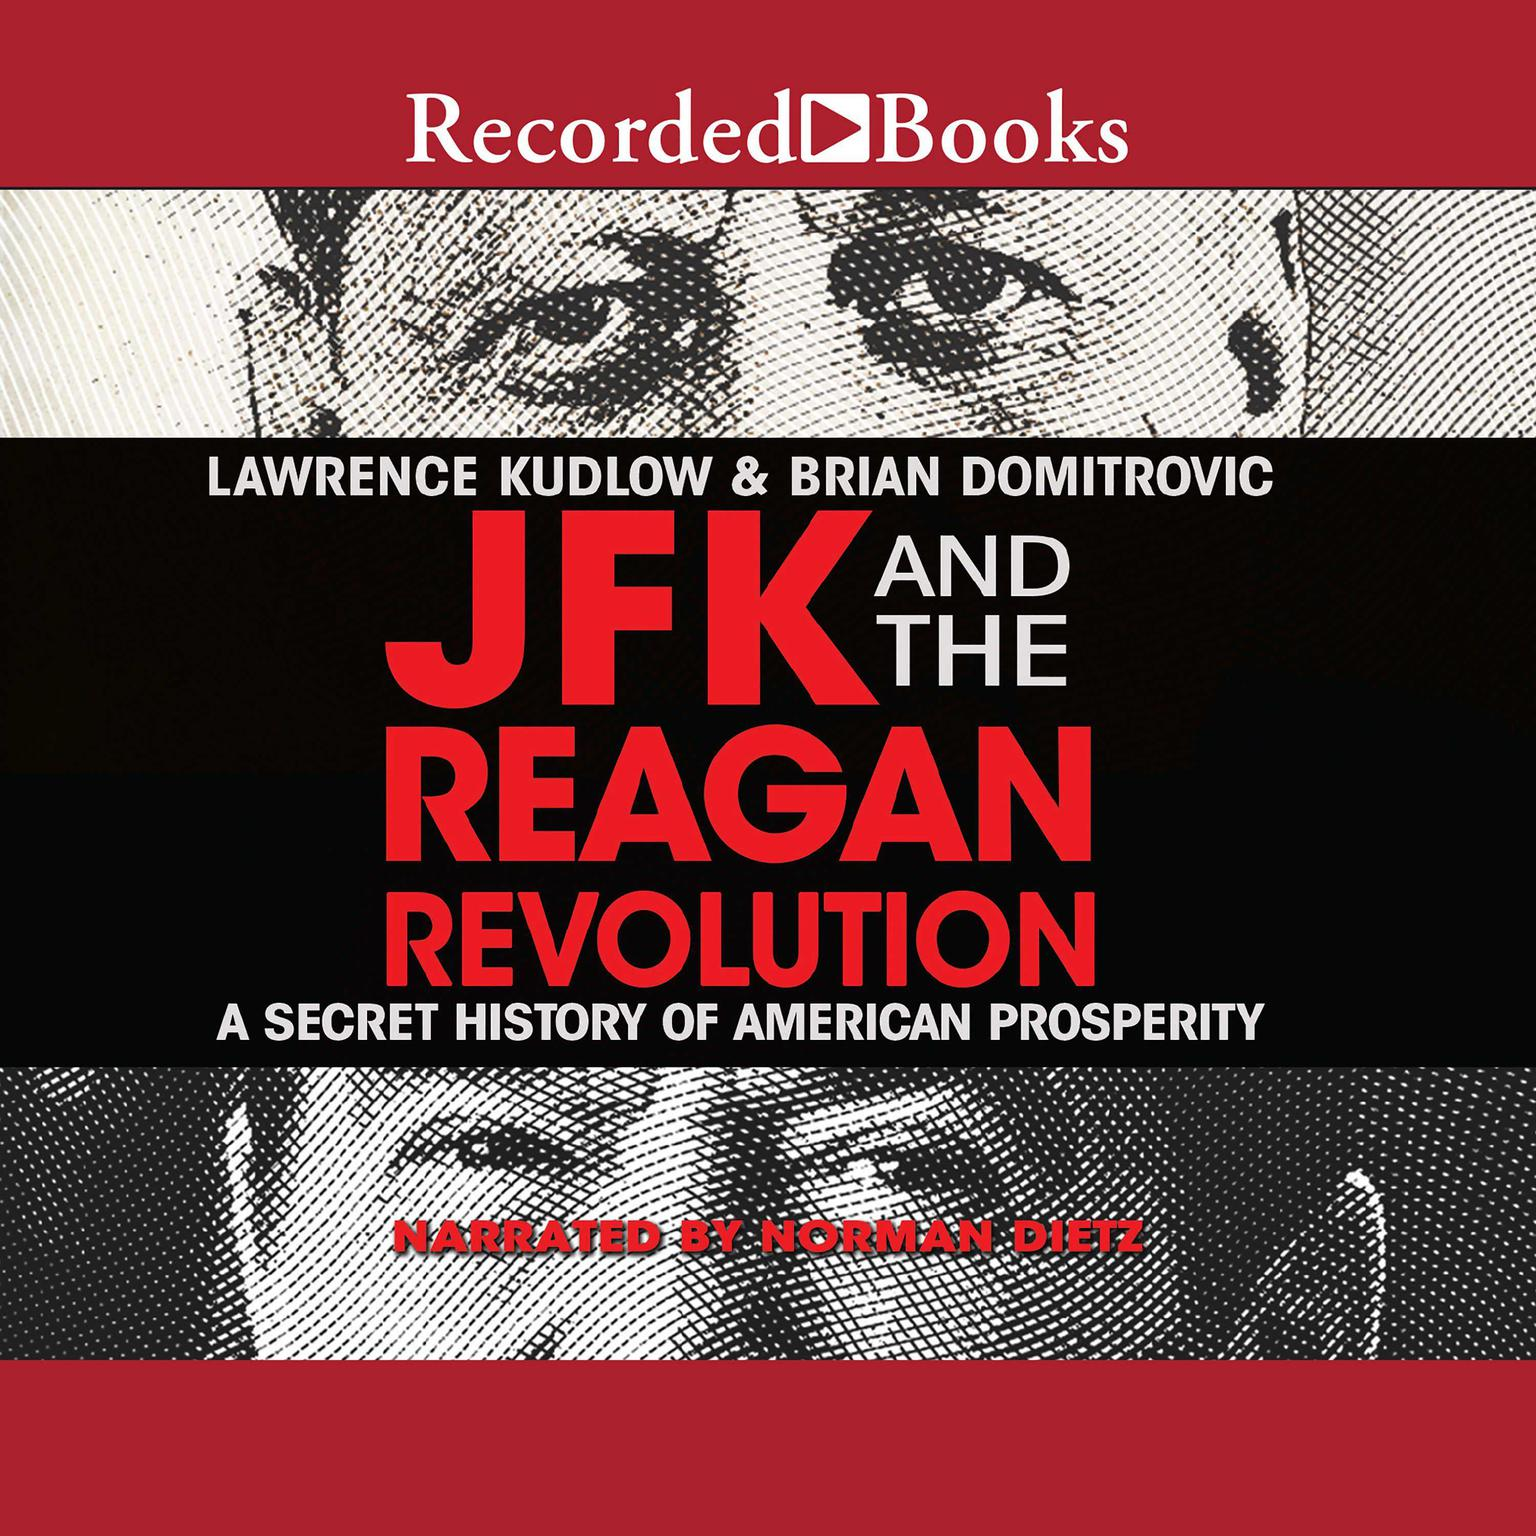 JFK and the Reagan Revolution: A Secret History of American Prosperity Audiobook, by Lawrence Kudlow